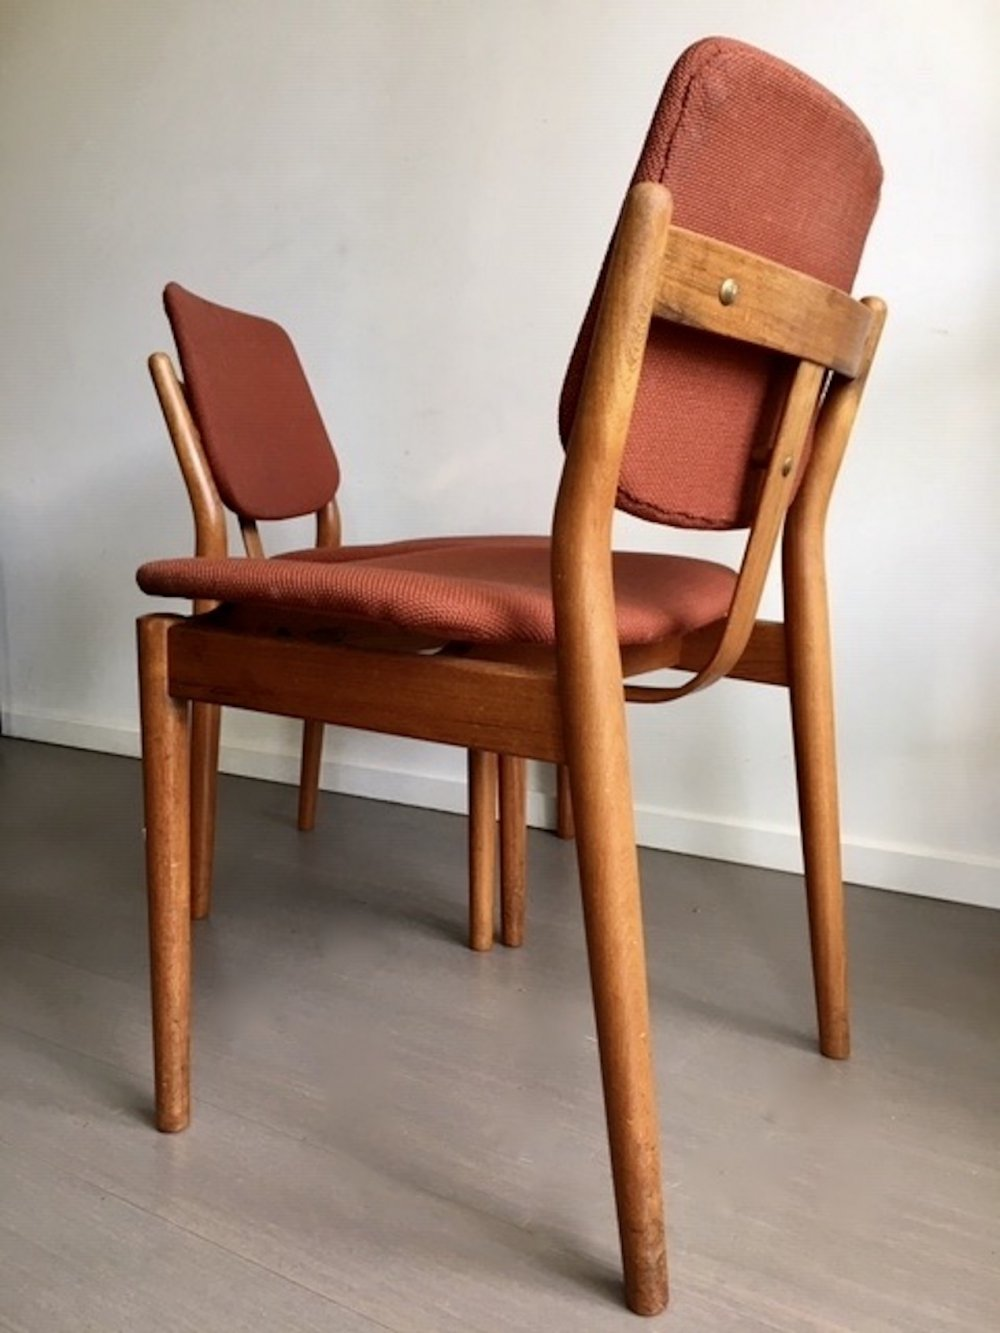 Pair of dining chairs by Arne Vodder for Sibast, 1960s